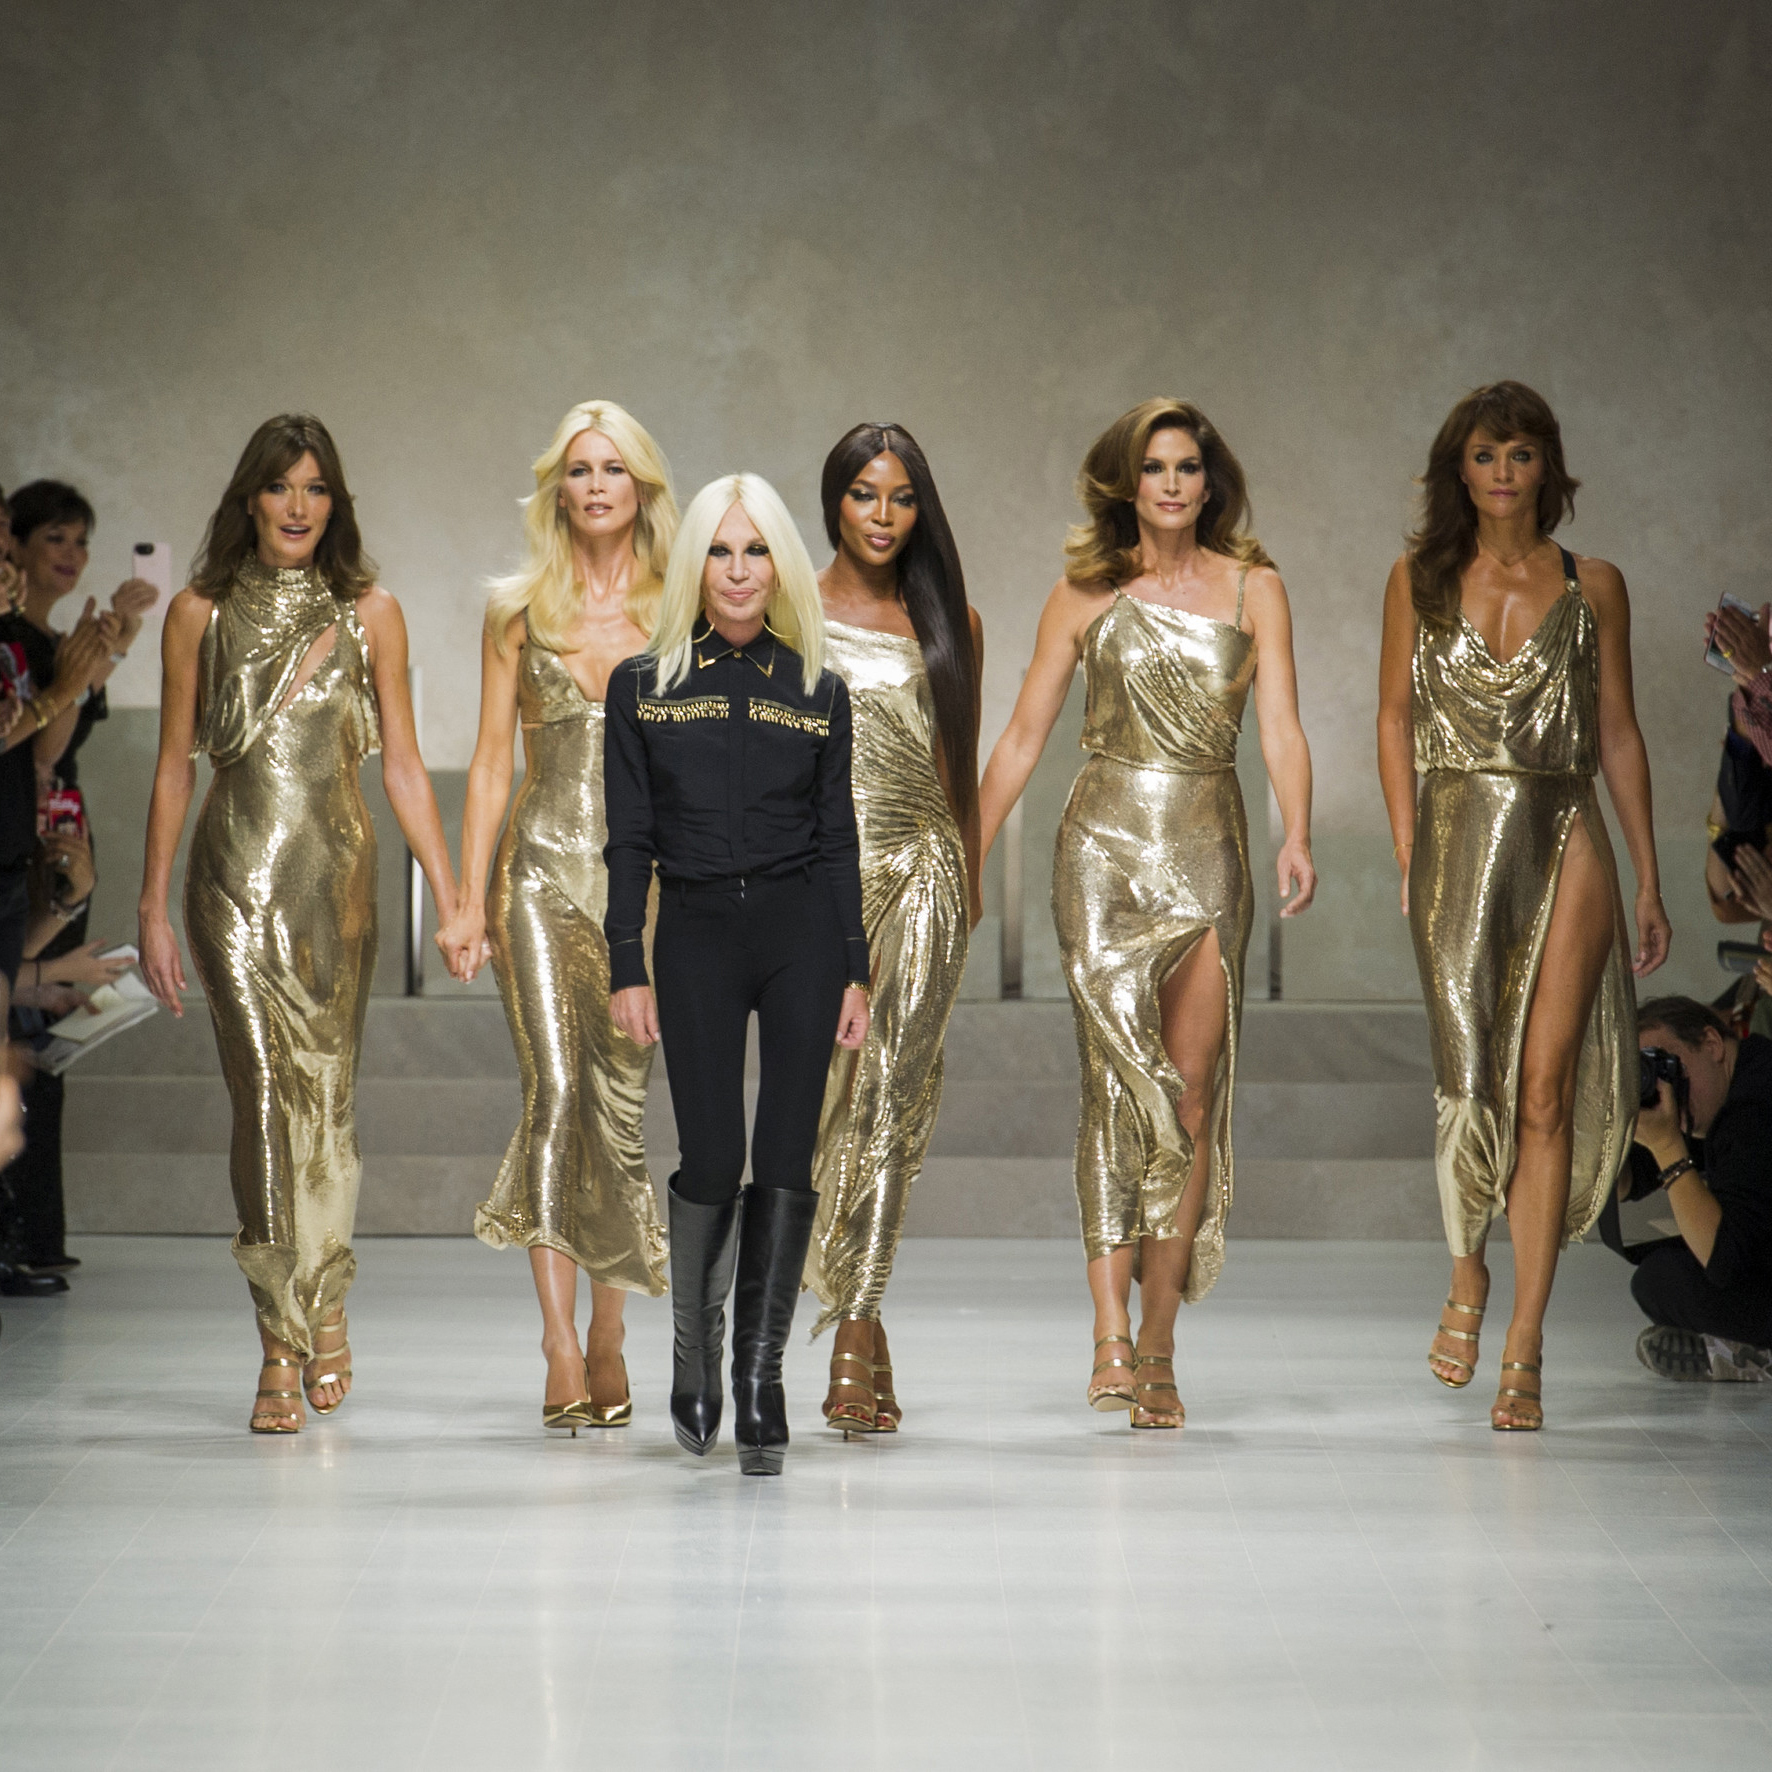 Revisit Versace S Iconic Supermodel Runway Moment Porter